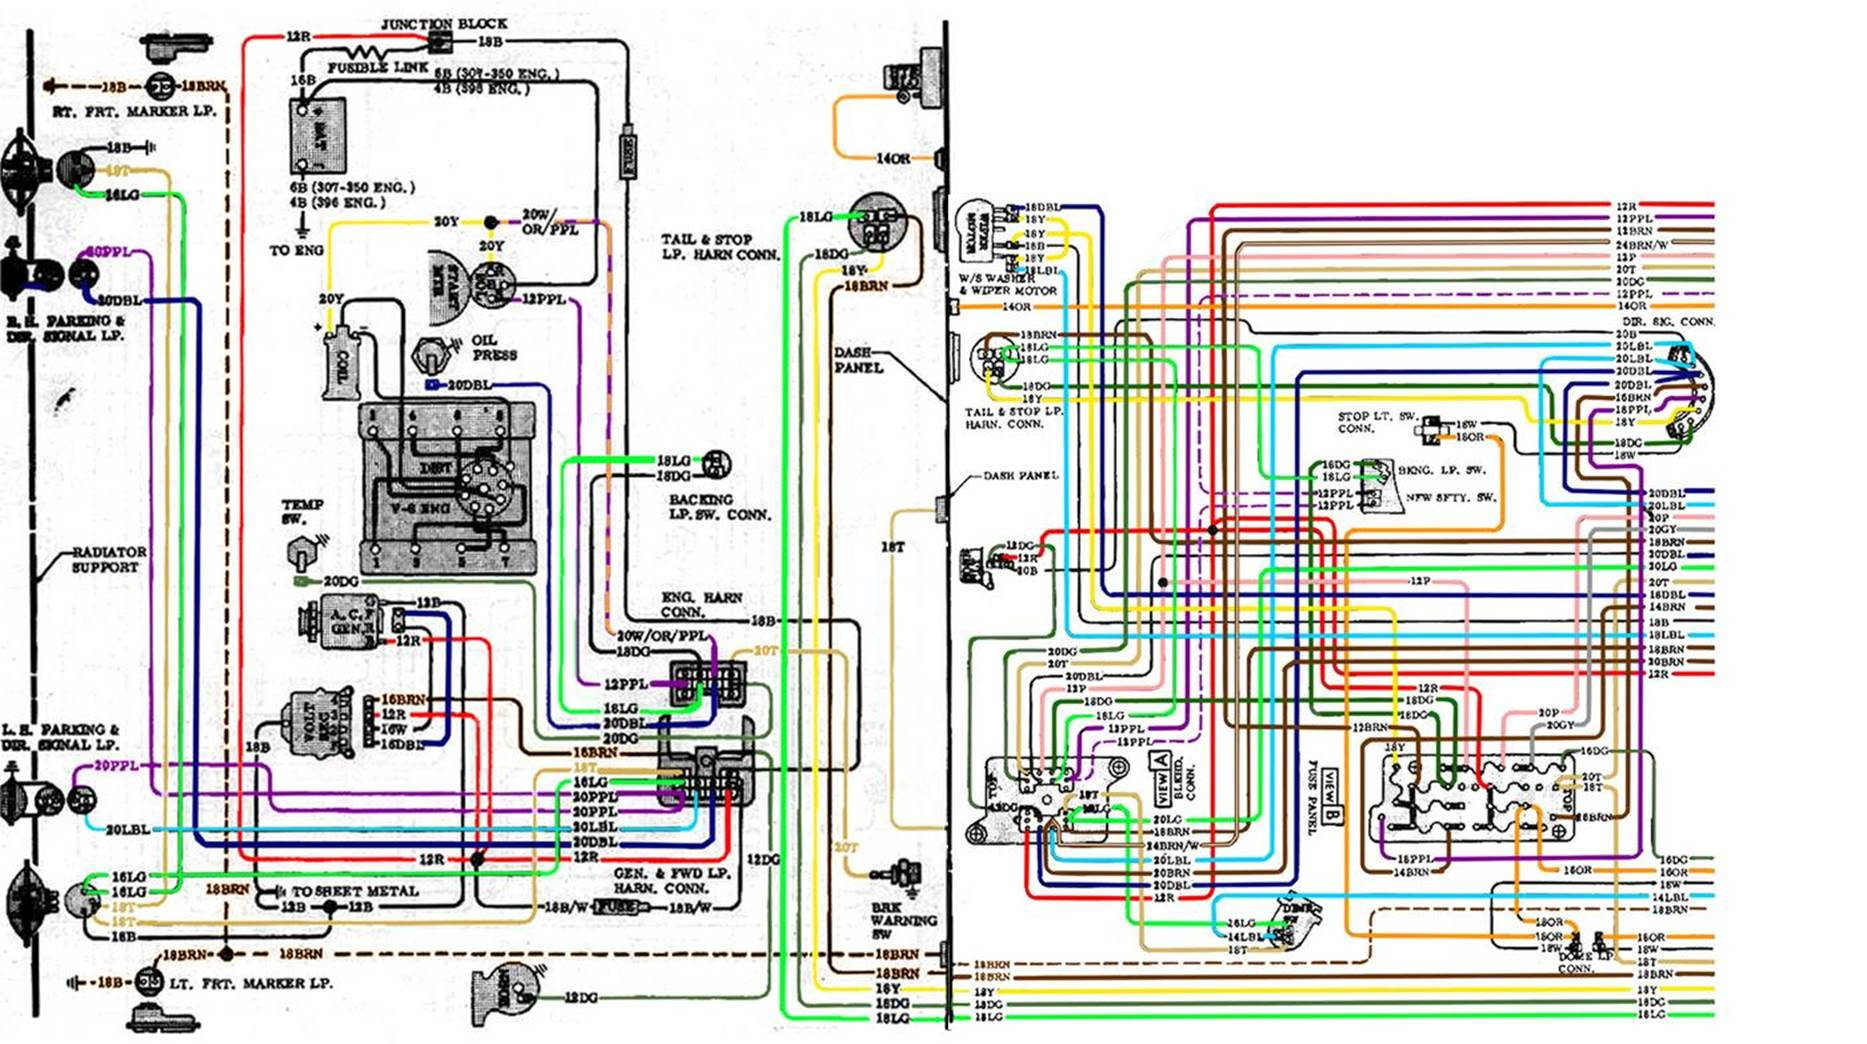 image002 1972 chevelle wiring diagram 1970 chevelle ss dash wiring diagram 1973 chevy nova wiring harness at edmiracle.co